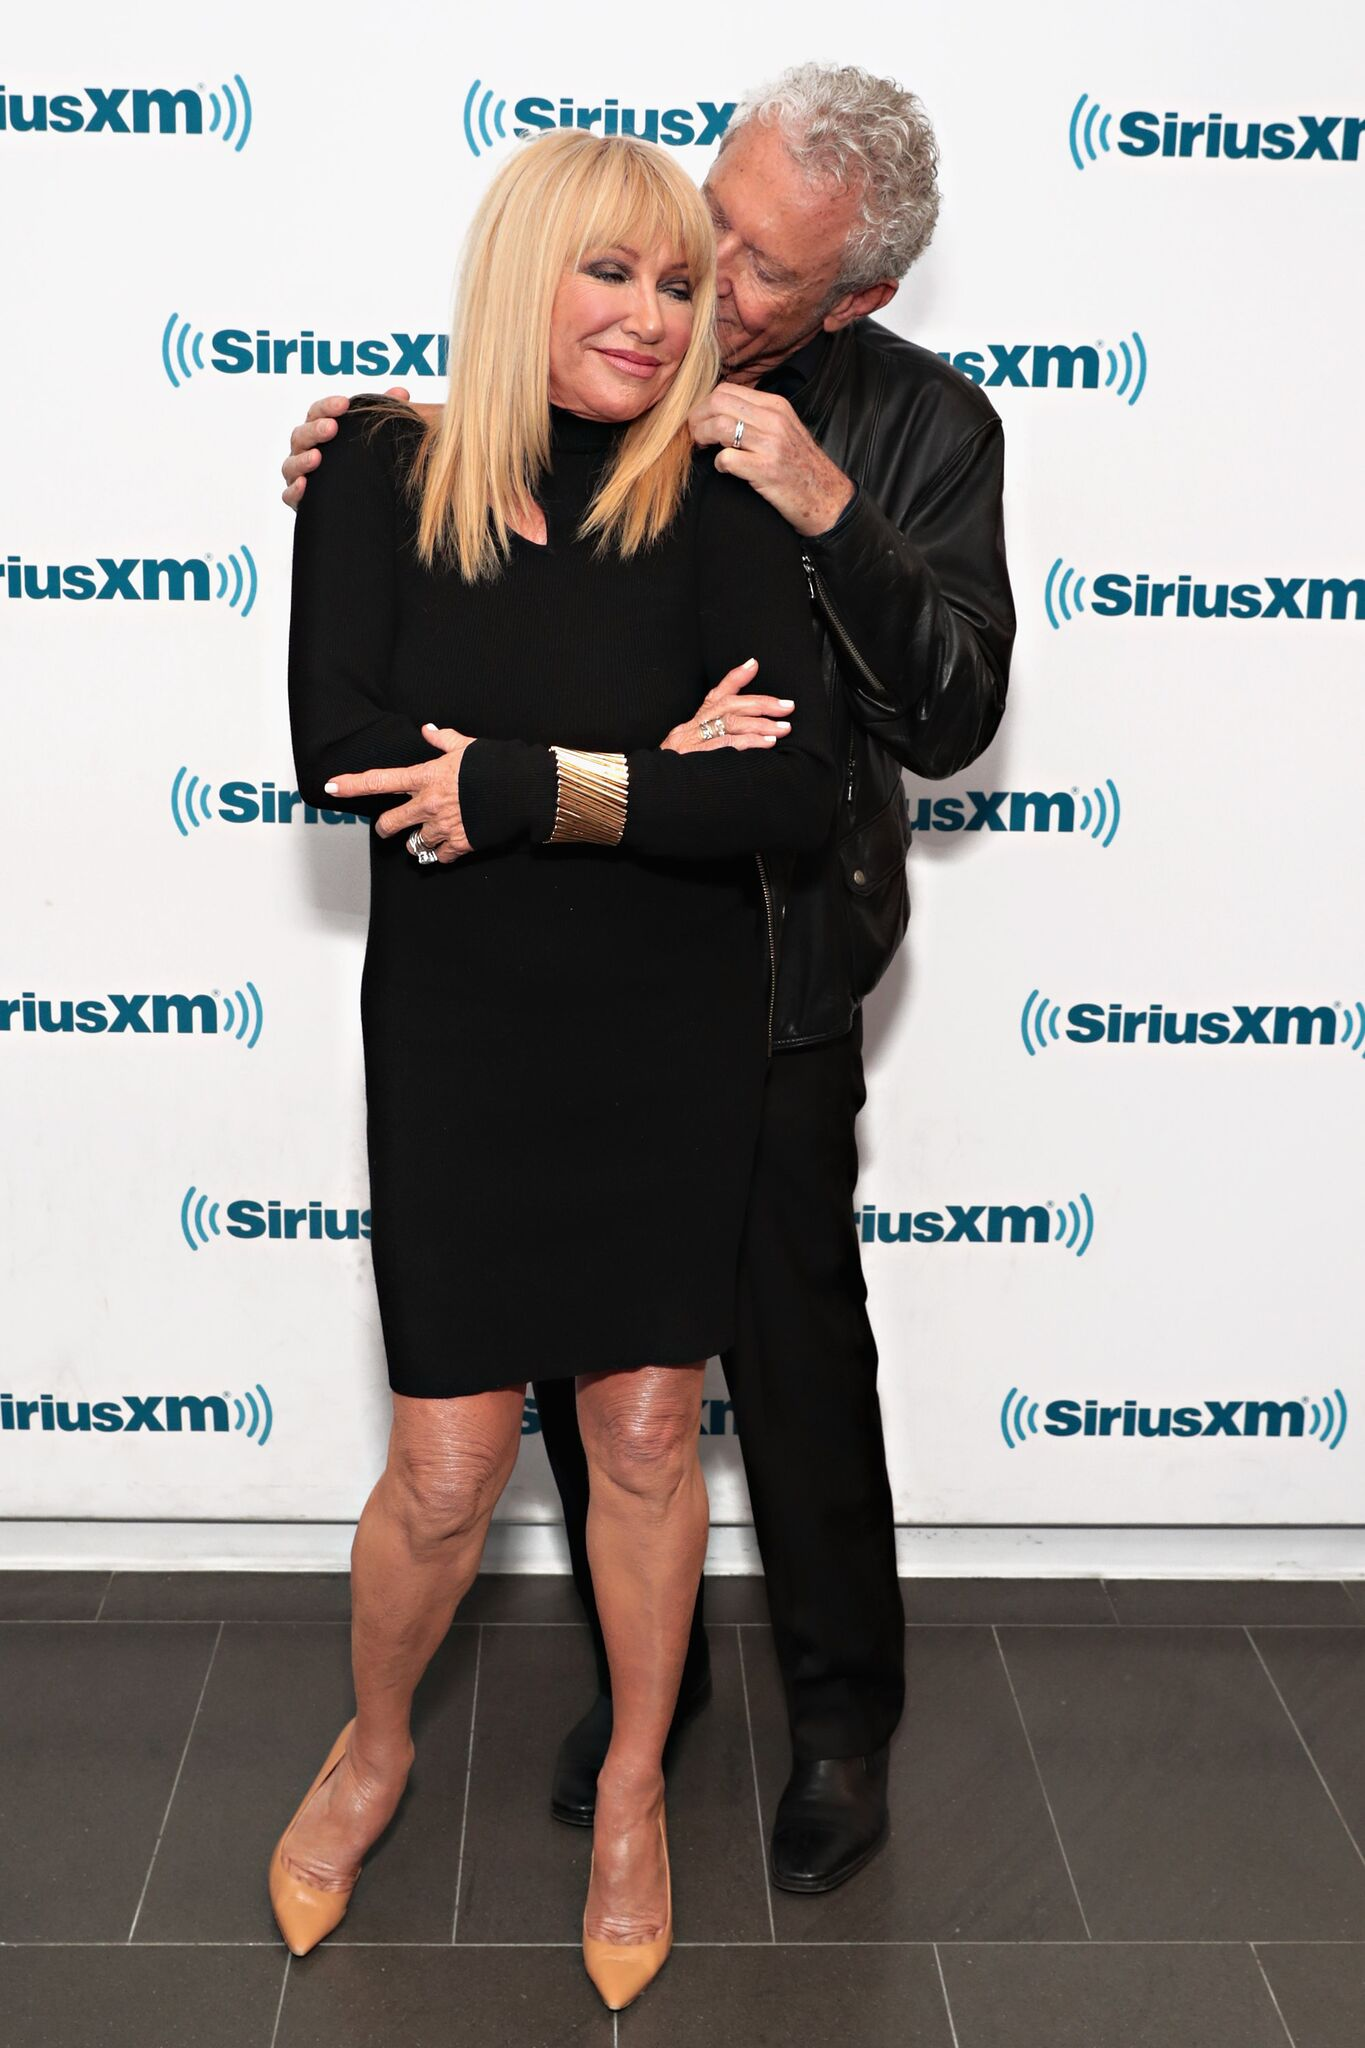 Suzanne Somers and husband Alan Hamel visit the SiriusXM Studios | Getty Images